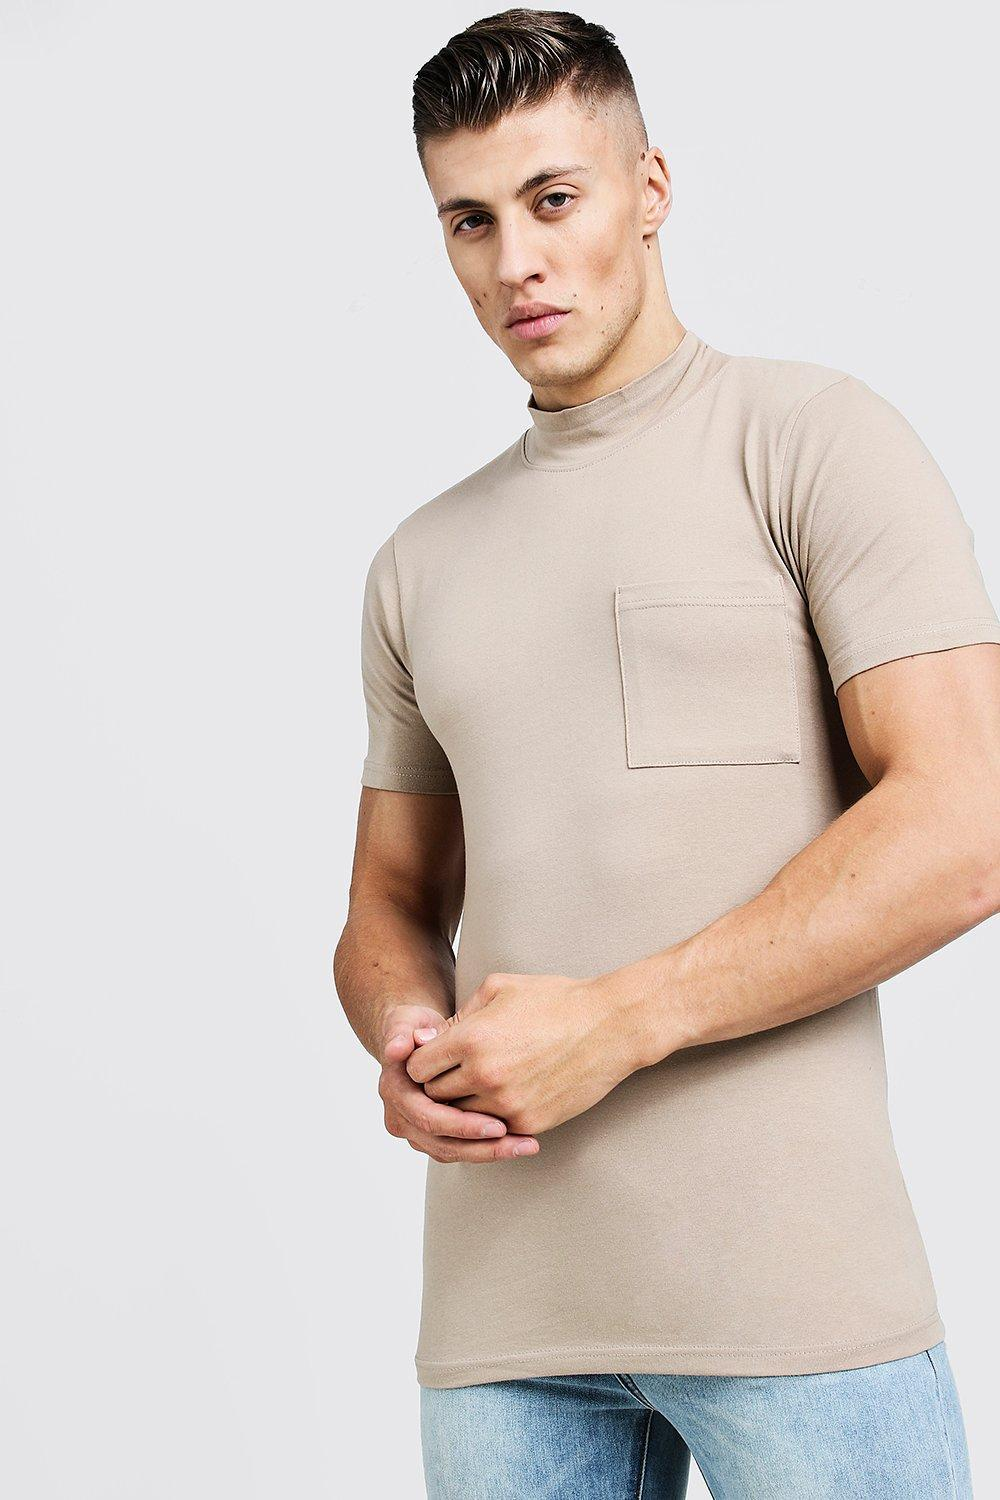 ed274273 Lyst - BoohooMAN Muscle Fit T-shirt With Extended Neck in Natural ...